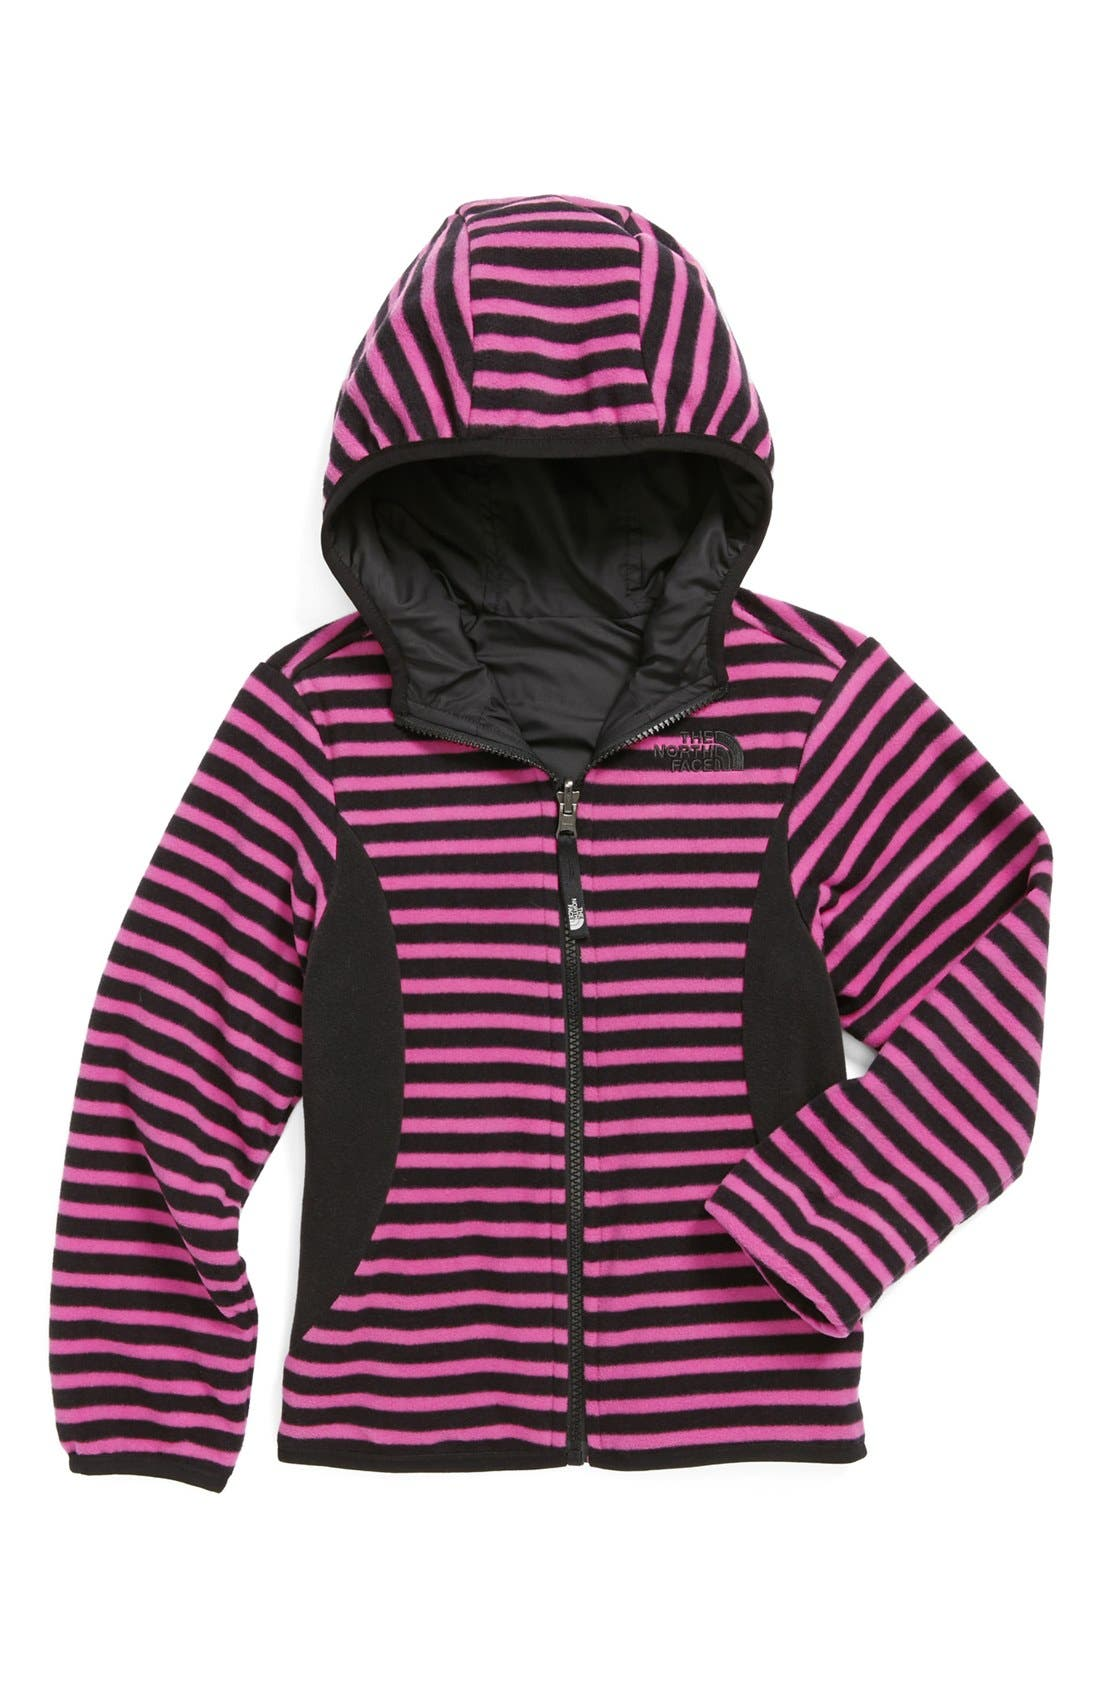 Alternate Image 1 Selected - The North Face 'Comet' Reversible Jacket (Little Girls)